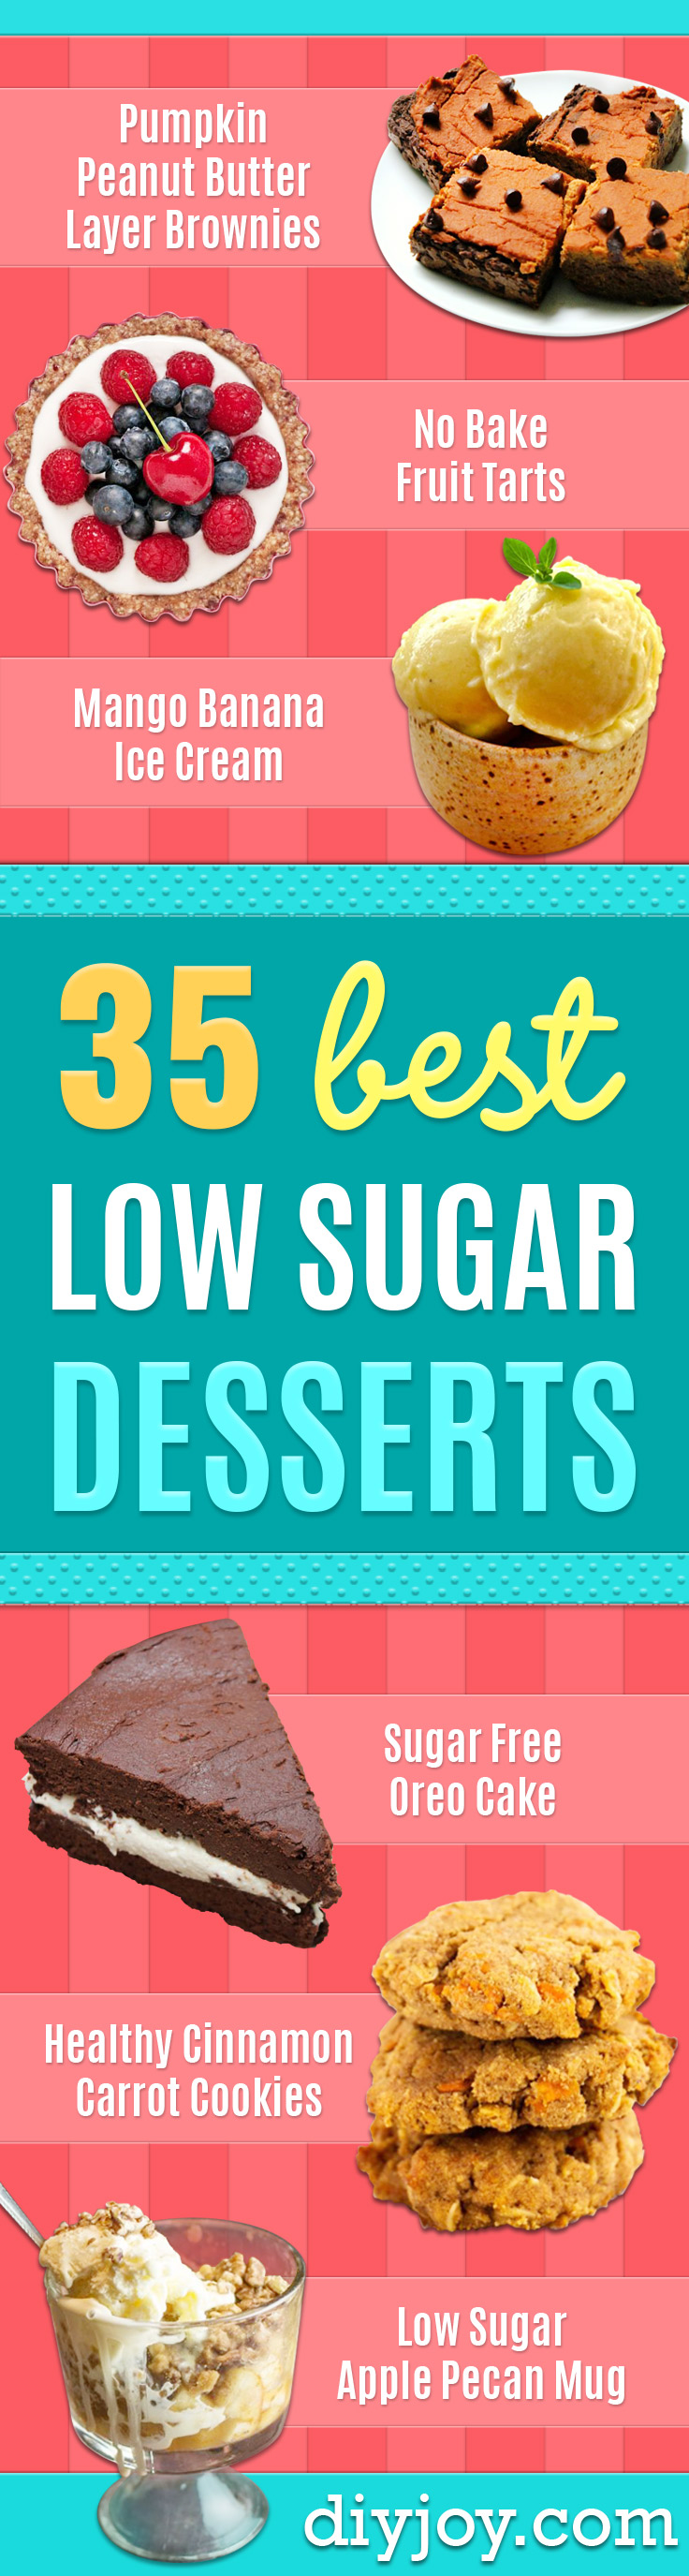 Low Sugar Dessert Recipes - Healthy Desserts and Ideas for Healthy Sweets Without Much Sugar - Raw Foods and Easy Clean Eating Dessert Tips, Keto Diet Snacks - Chocolate, Gluten Free, Cakes, Fruit Dips, No Bake, Stevia and Sweetener Options - Diabetic Diets and Diabetes Recipe Ideas for Desserts #recipes #recipeideas #lowsugar #nosugar #lowcalorie #diyjoy #dessertrecipes http://diyjoy.com/low-sugar-dessert-recipes